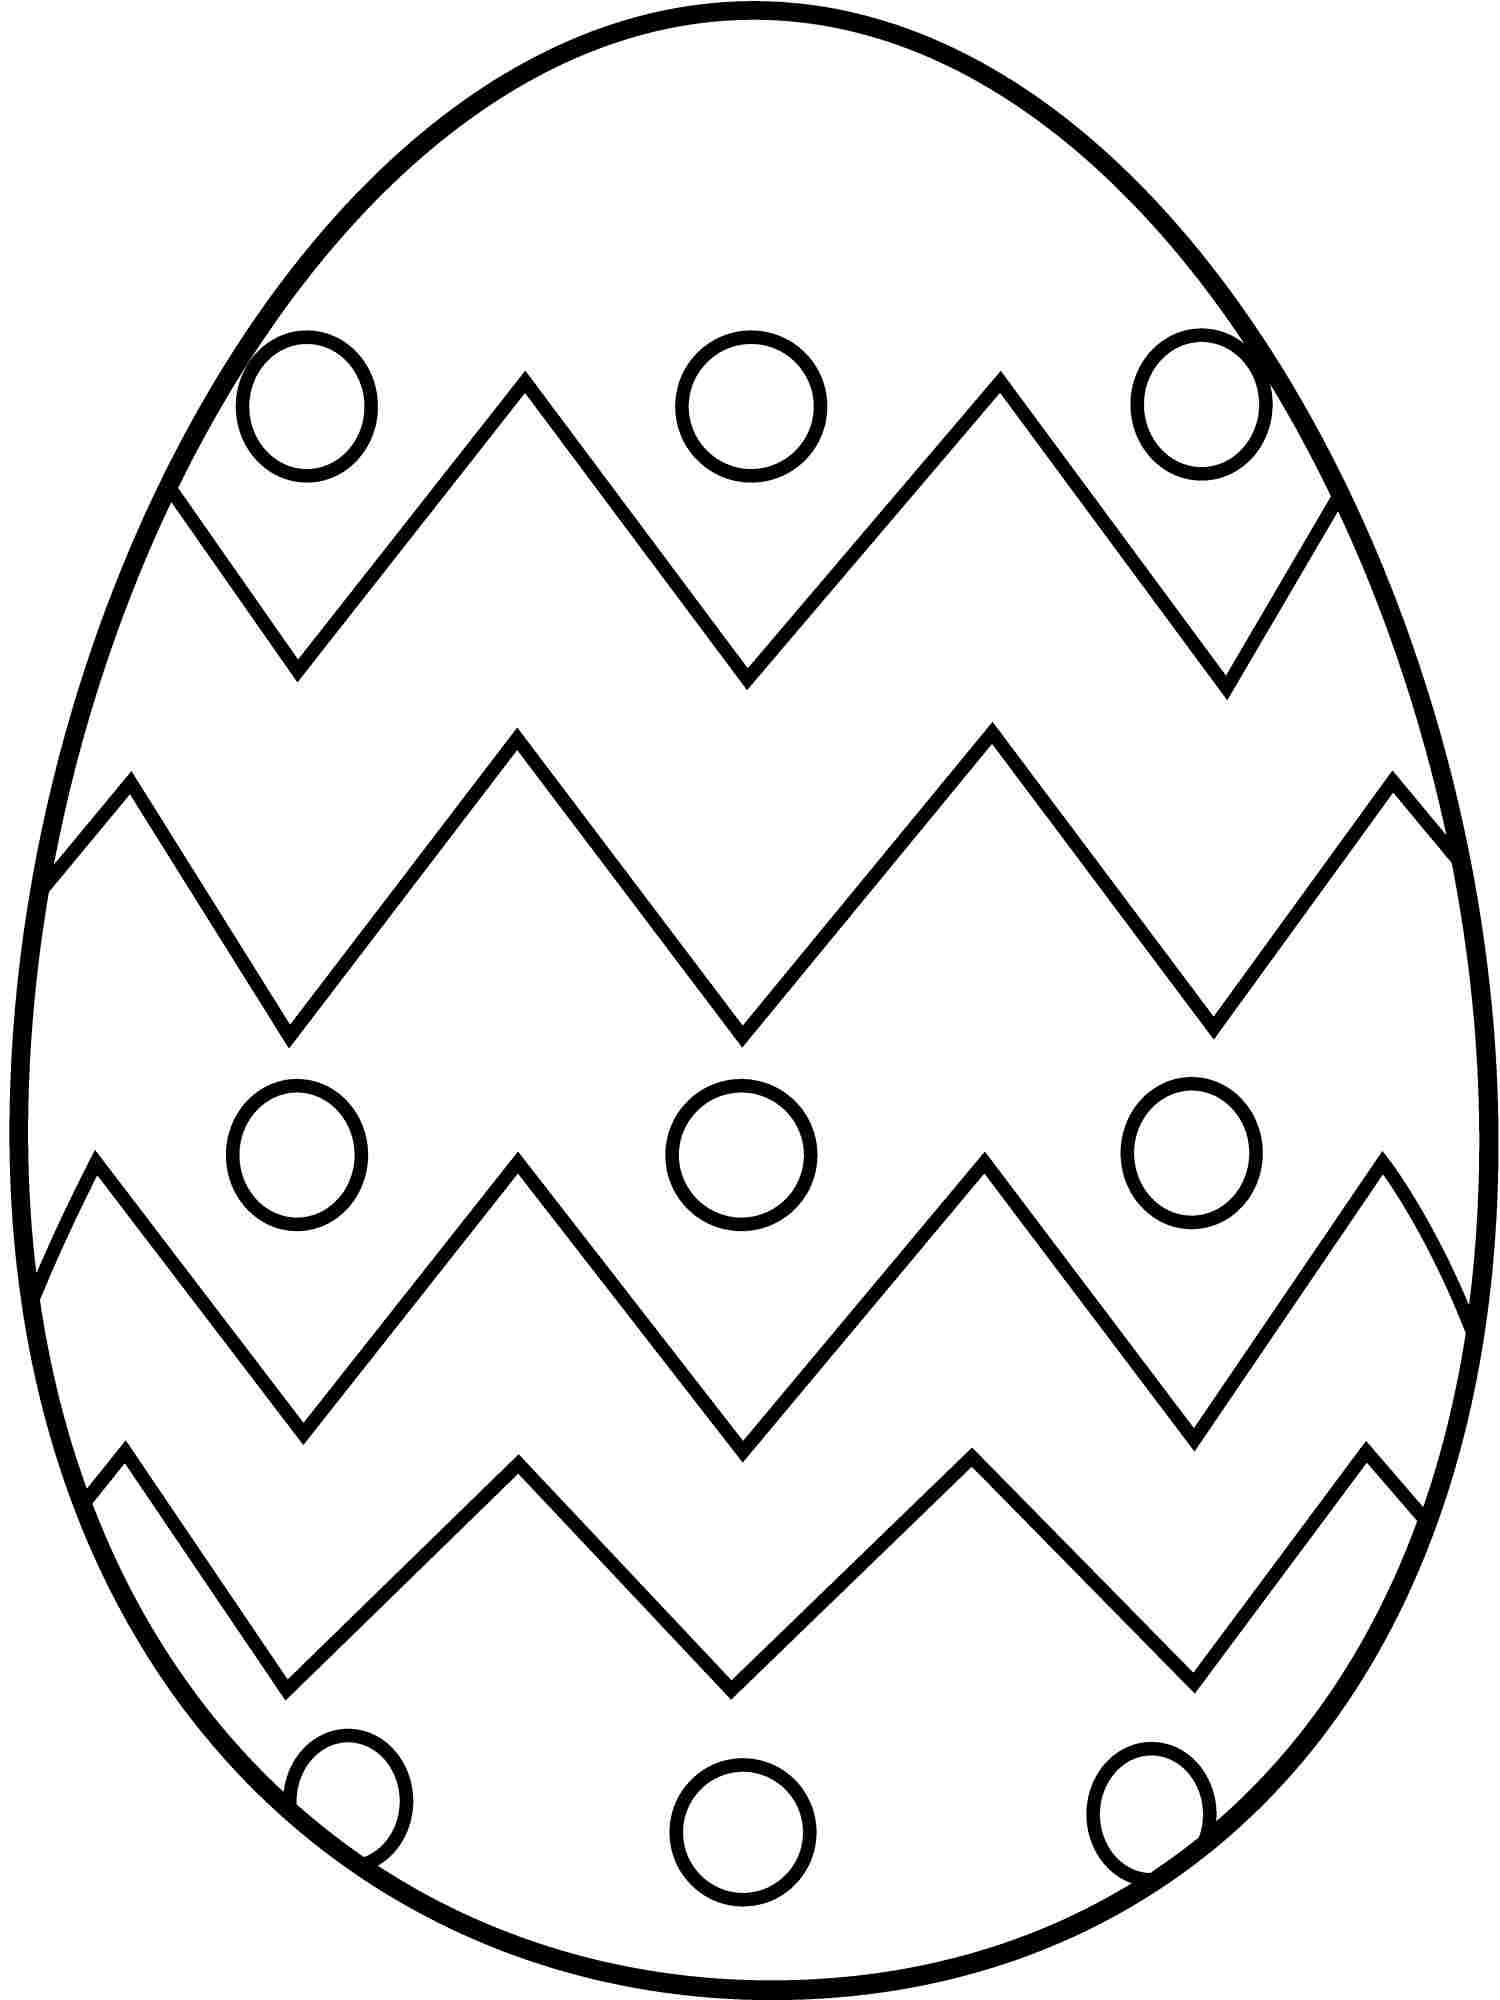 Printable Easter Coloring Sheets Printable Free Design | Julie - Free Printable Easter Colouring Sheets